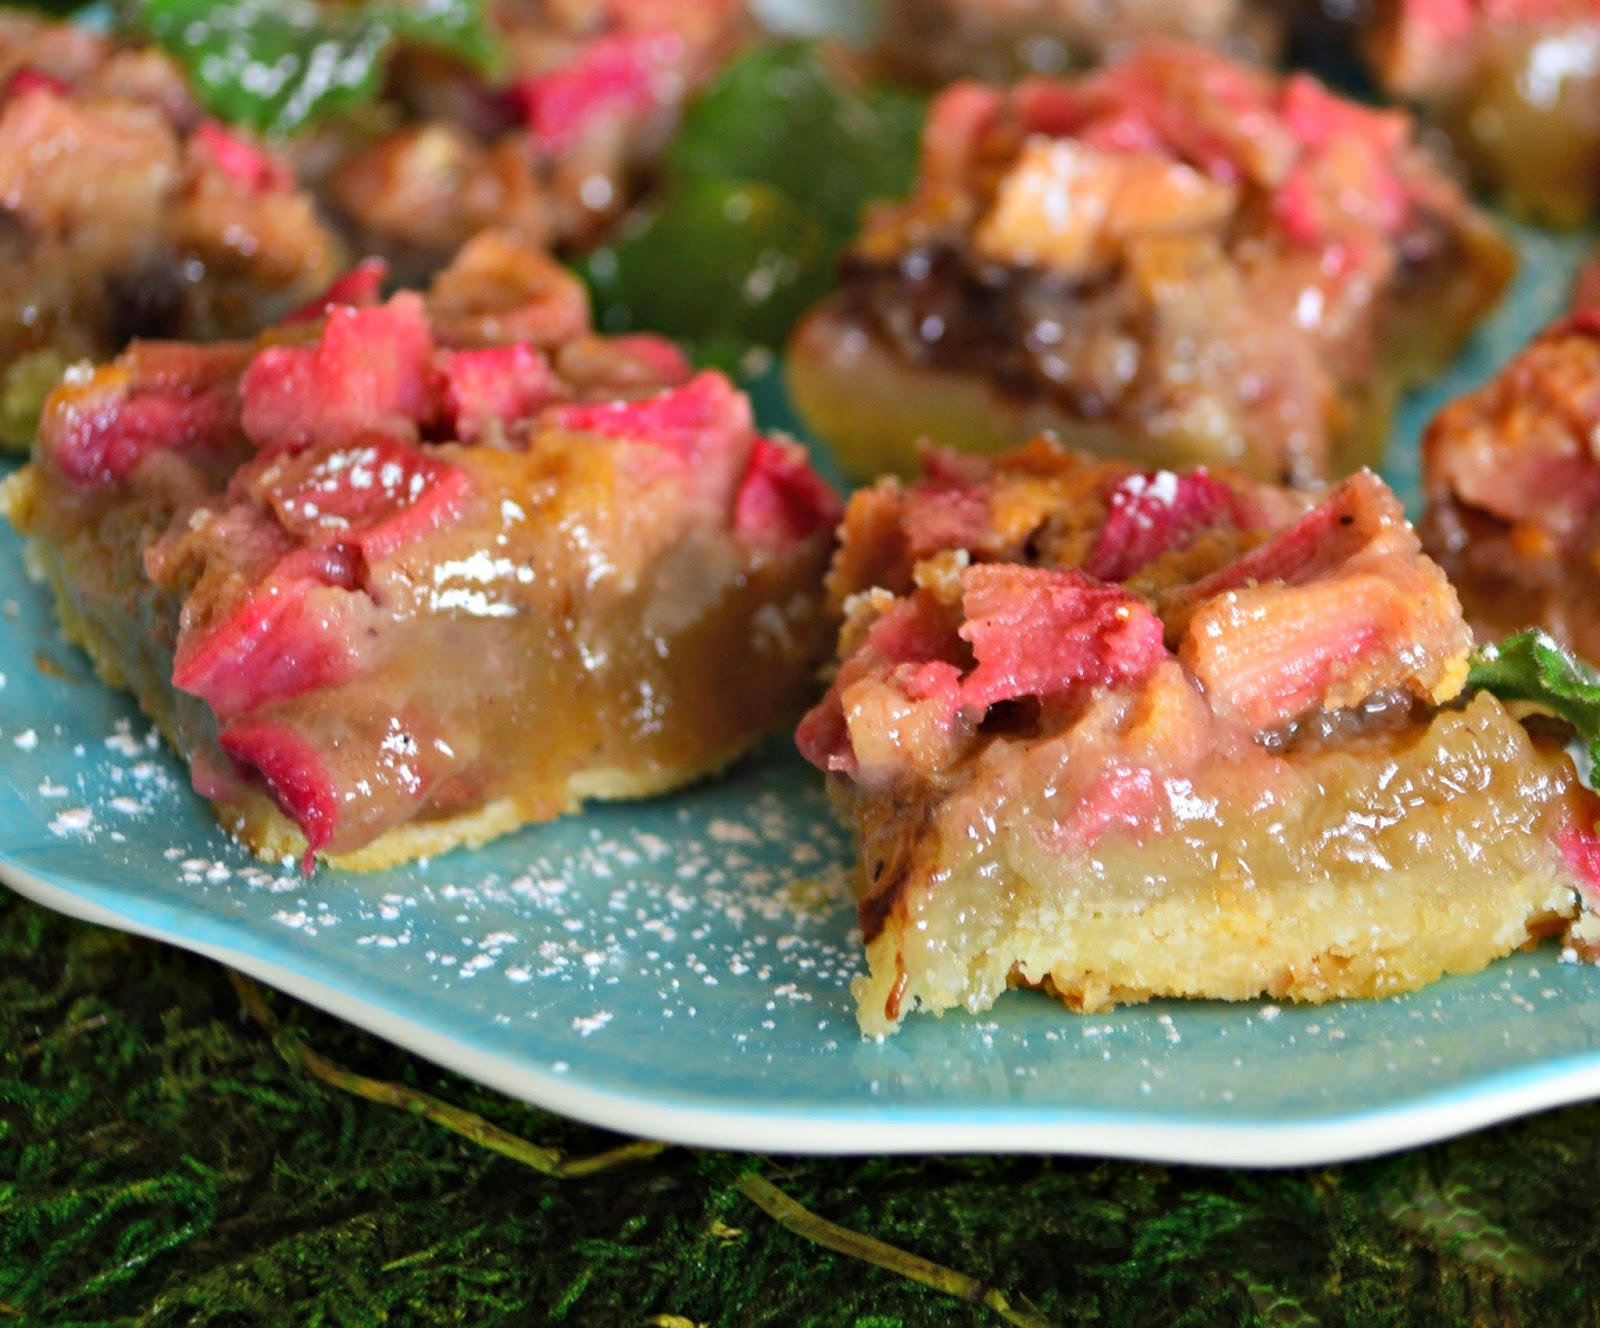 Rhubarb and Black Pepper Shortbread bars are filled with rhubarb and strawberry jam. A hint of back pepper gives these a touch extra! This is a great spring dessert. #rhubarb #cookies #barcookies #dessert www.thisishowicook.com